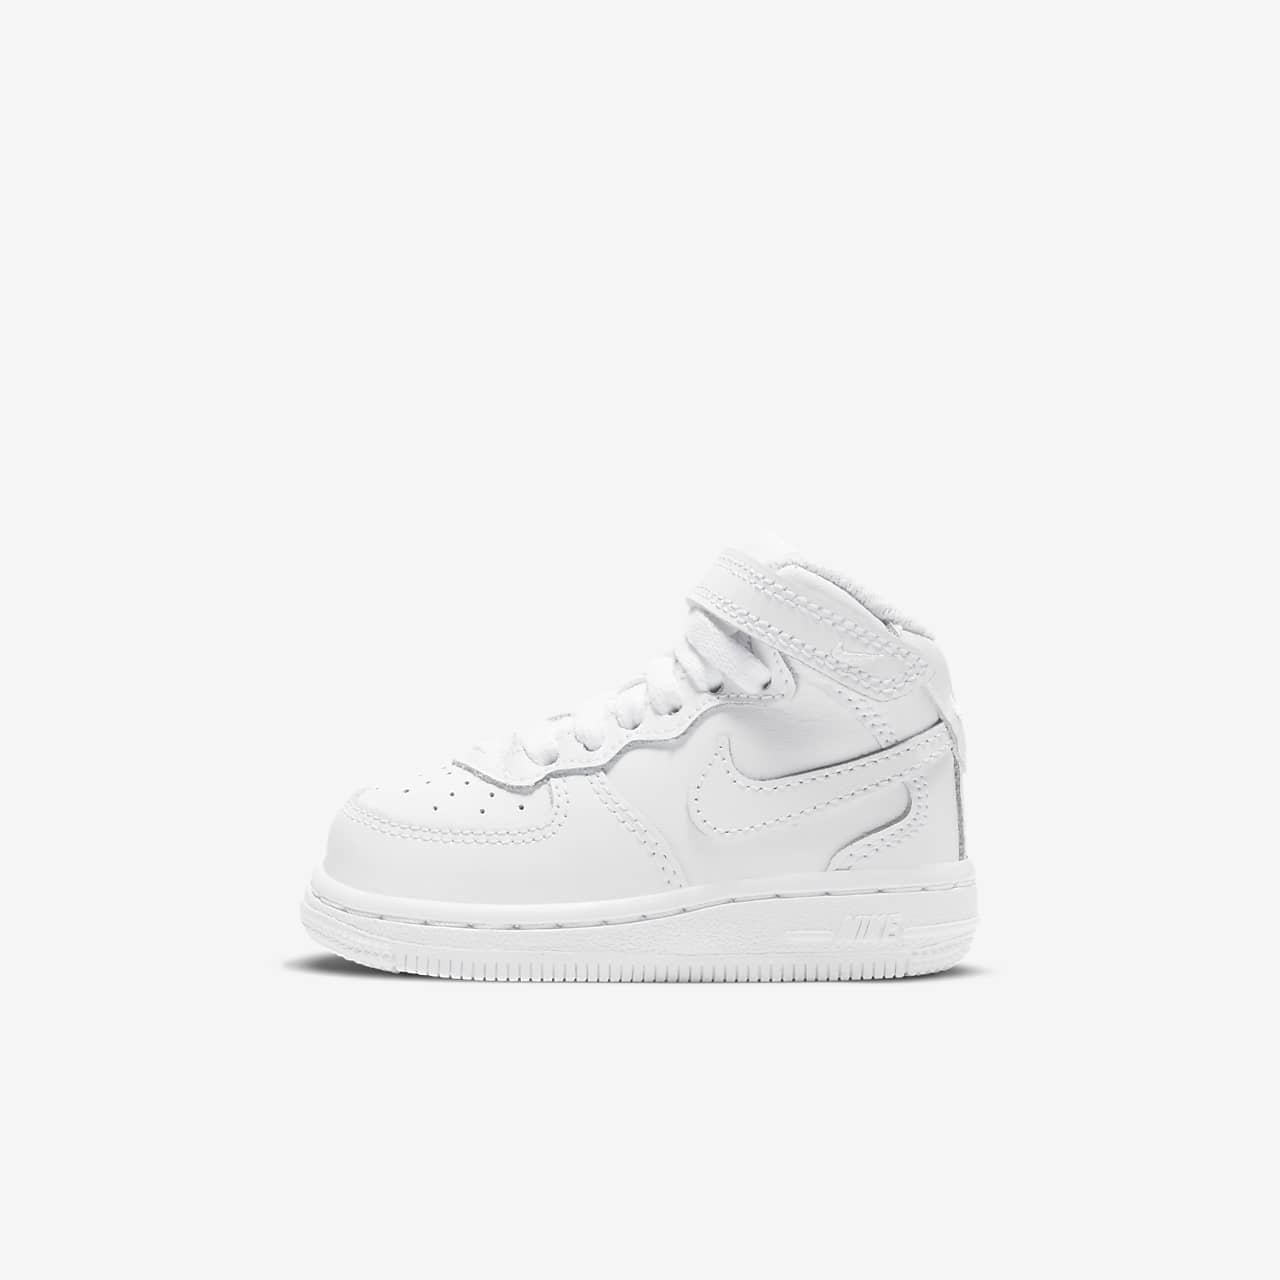 Nike Air Force 1 Mid Infant/Toddler Shoe